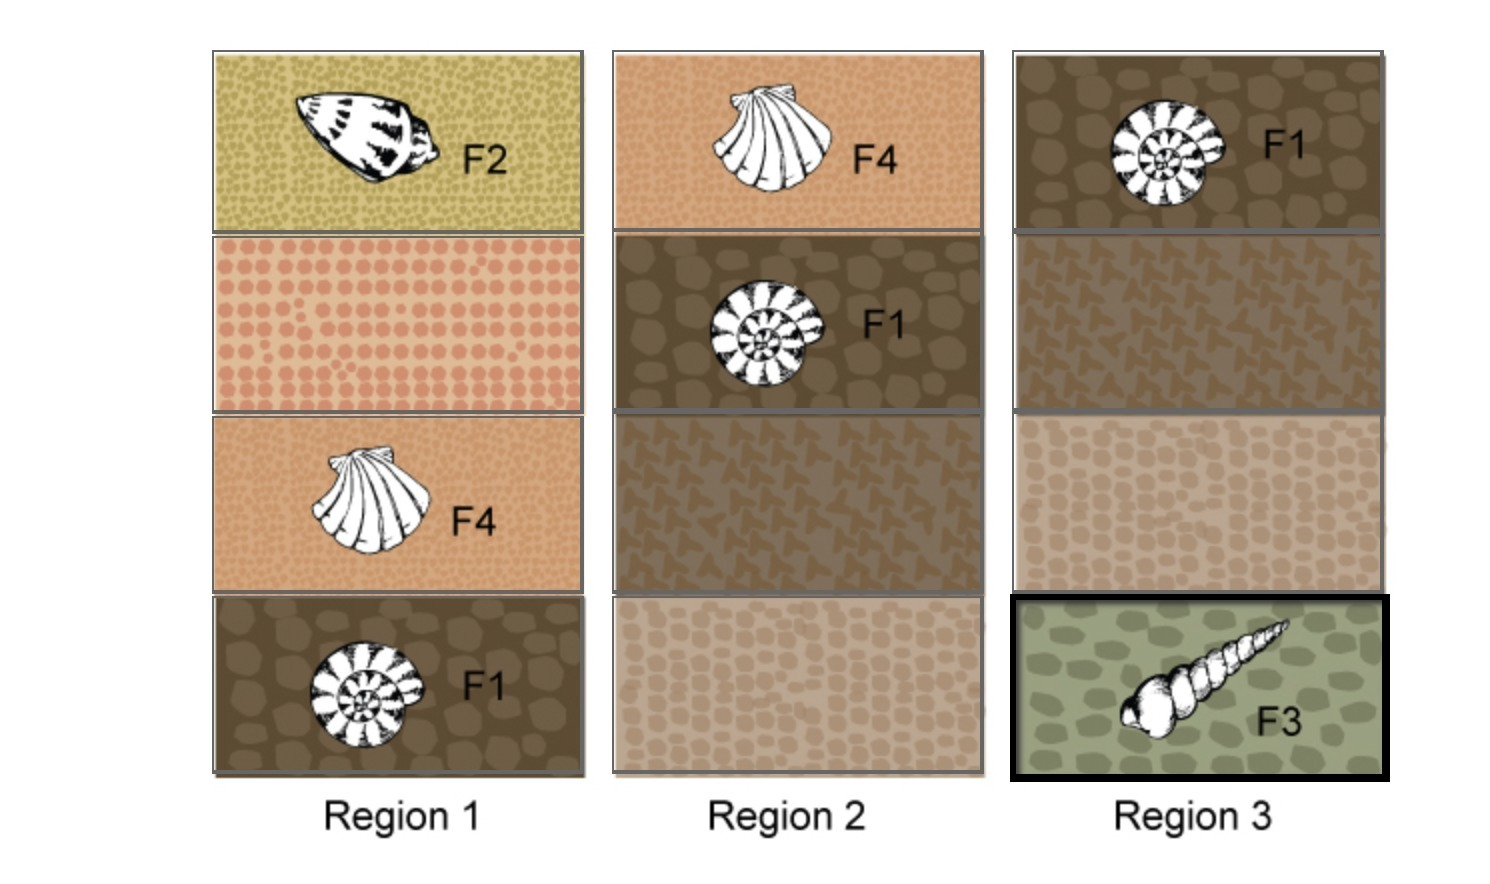 The image shows core samples of rock strata taken from three